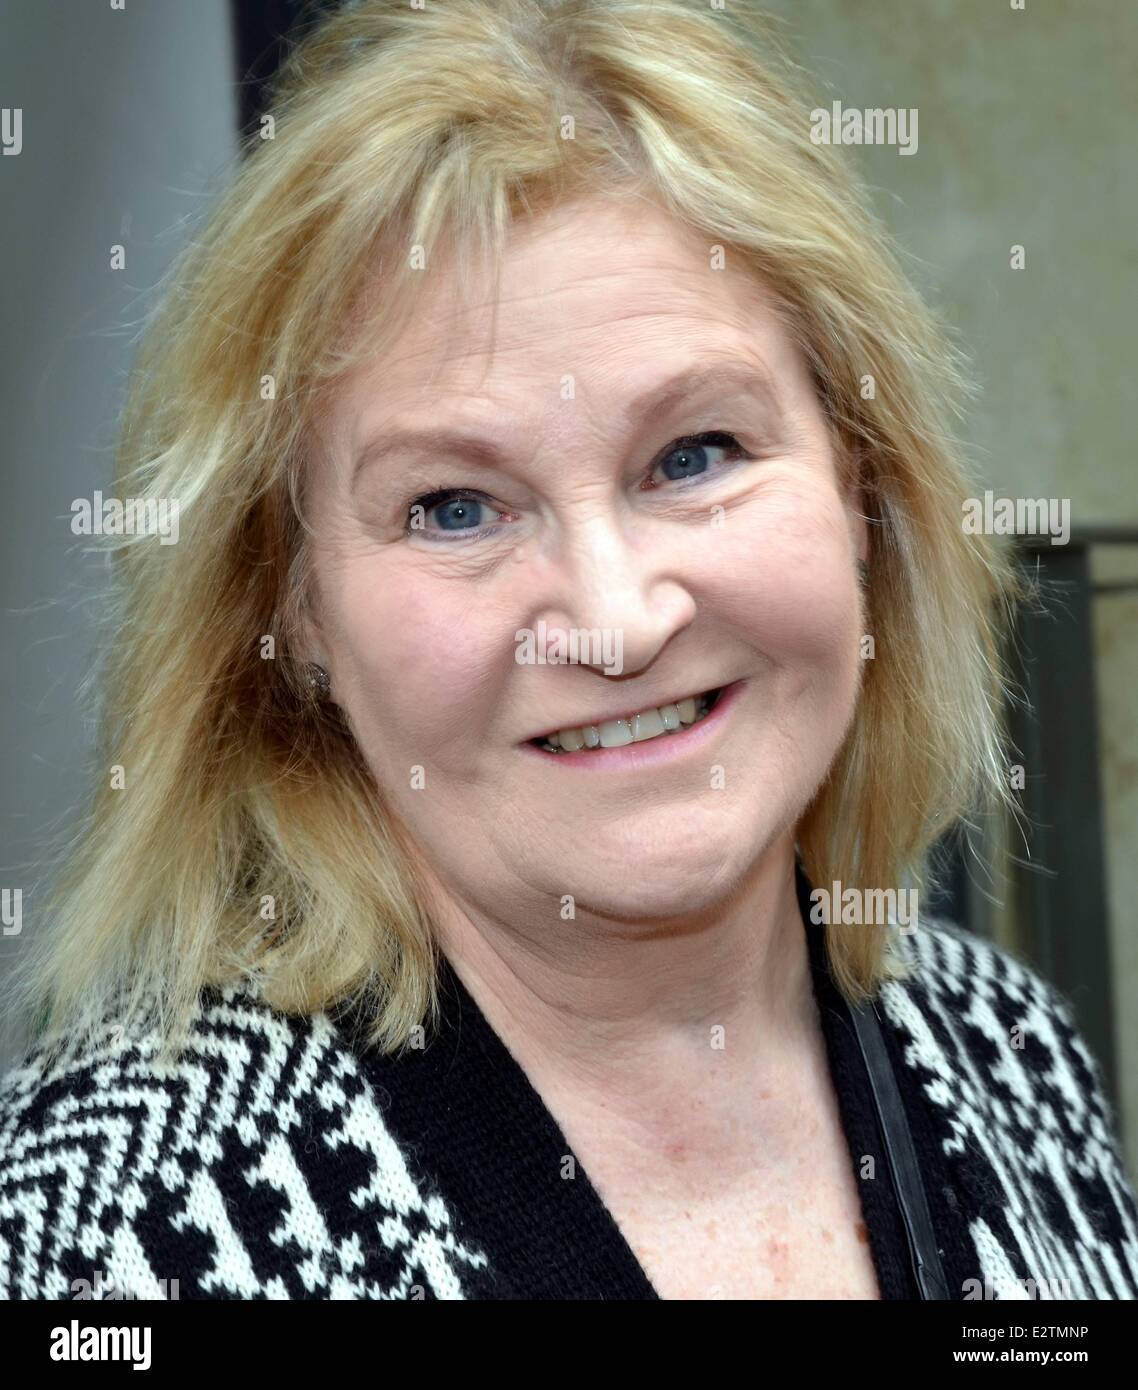 Michele Dotrice (born 1948) nudes (53 foto and video), Topless, Cleavage, Instagram, bra 2017